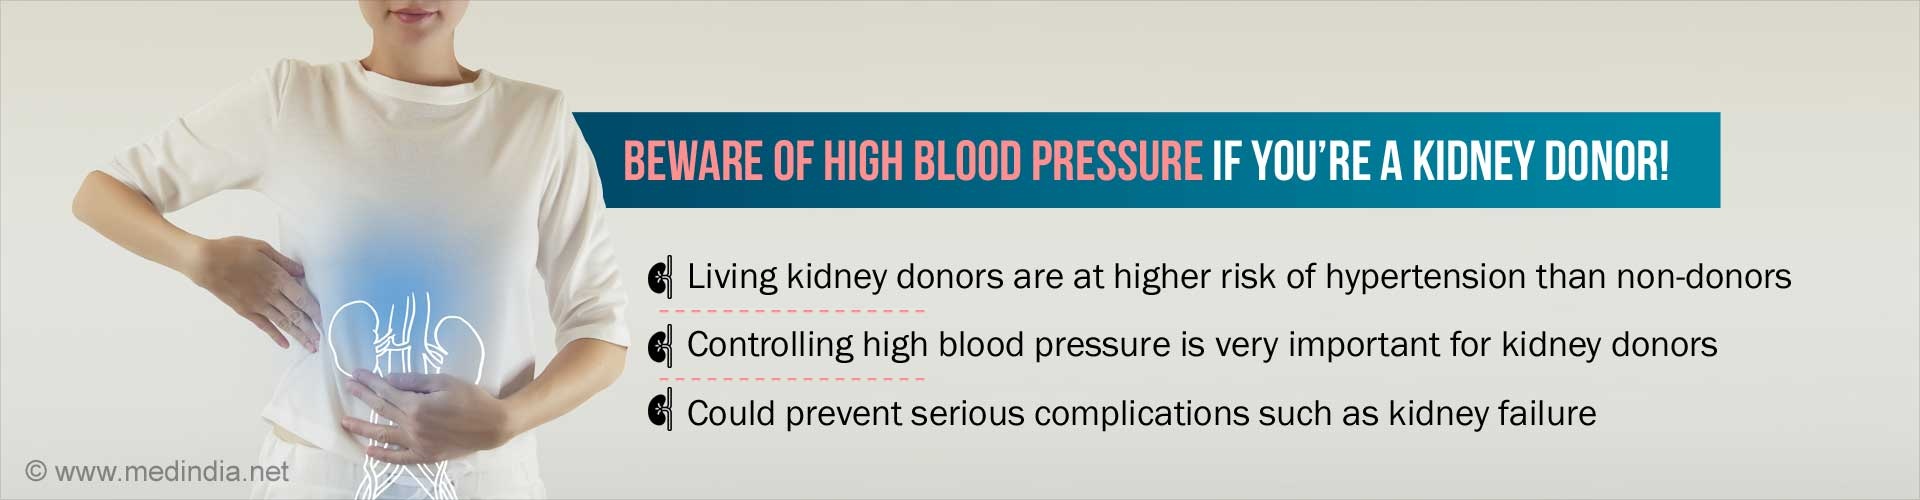 Beware of high blood pressure if you're a kidney donor. living kidney donors are at higher risk of hypertension than non-donors. Controlling high blood pressure is very important for kidney donors. Could prevent serious complications such as kidney failure.